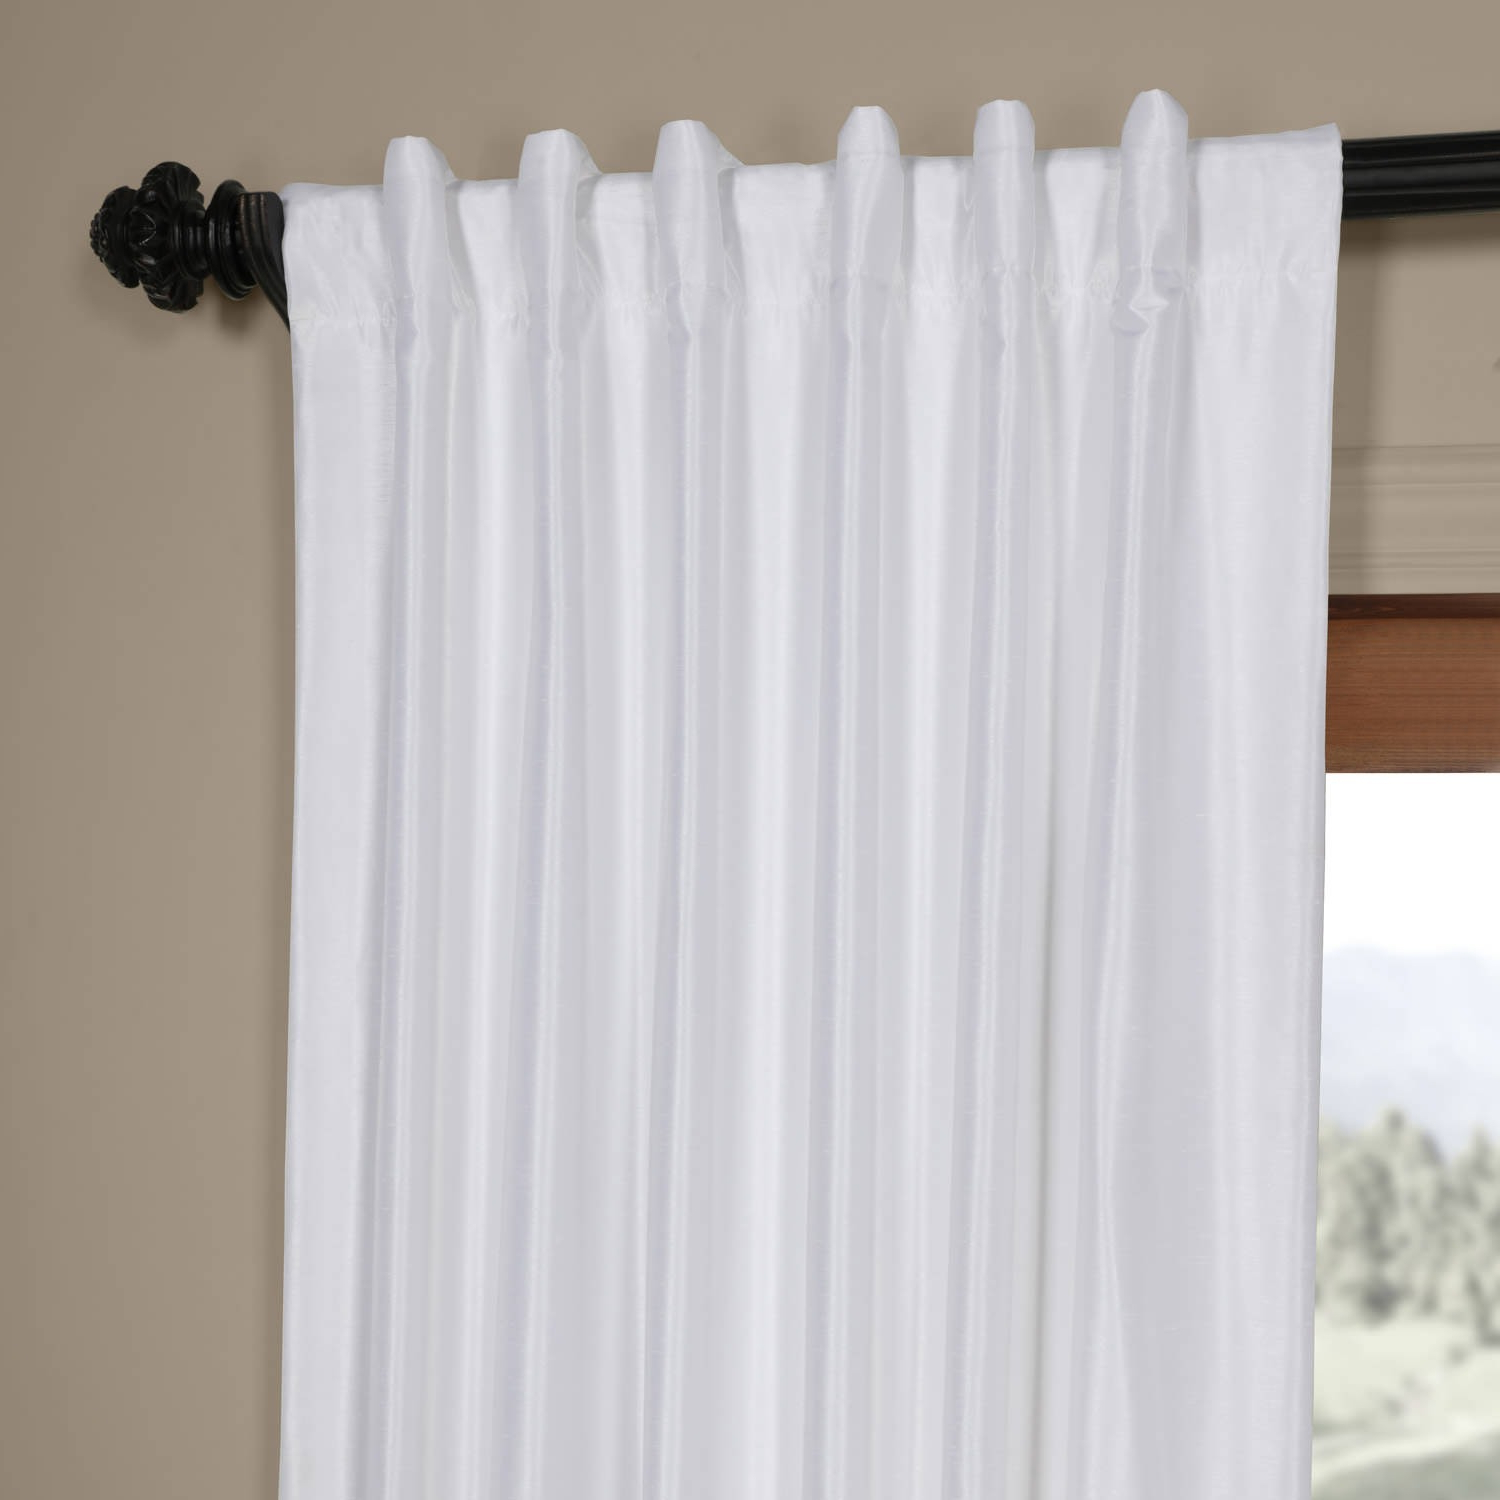 Current Ice White Vintage Faux Textured Dupioni Silk 108L Curtain Panel Within Ice White Vintage Faux Textured Silk Curtain Panels (View 5 of 20)